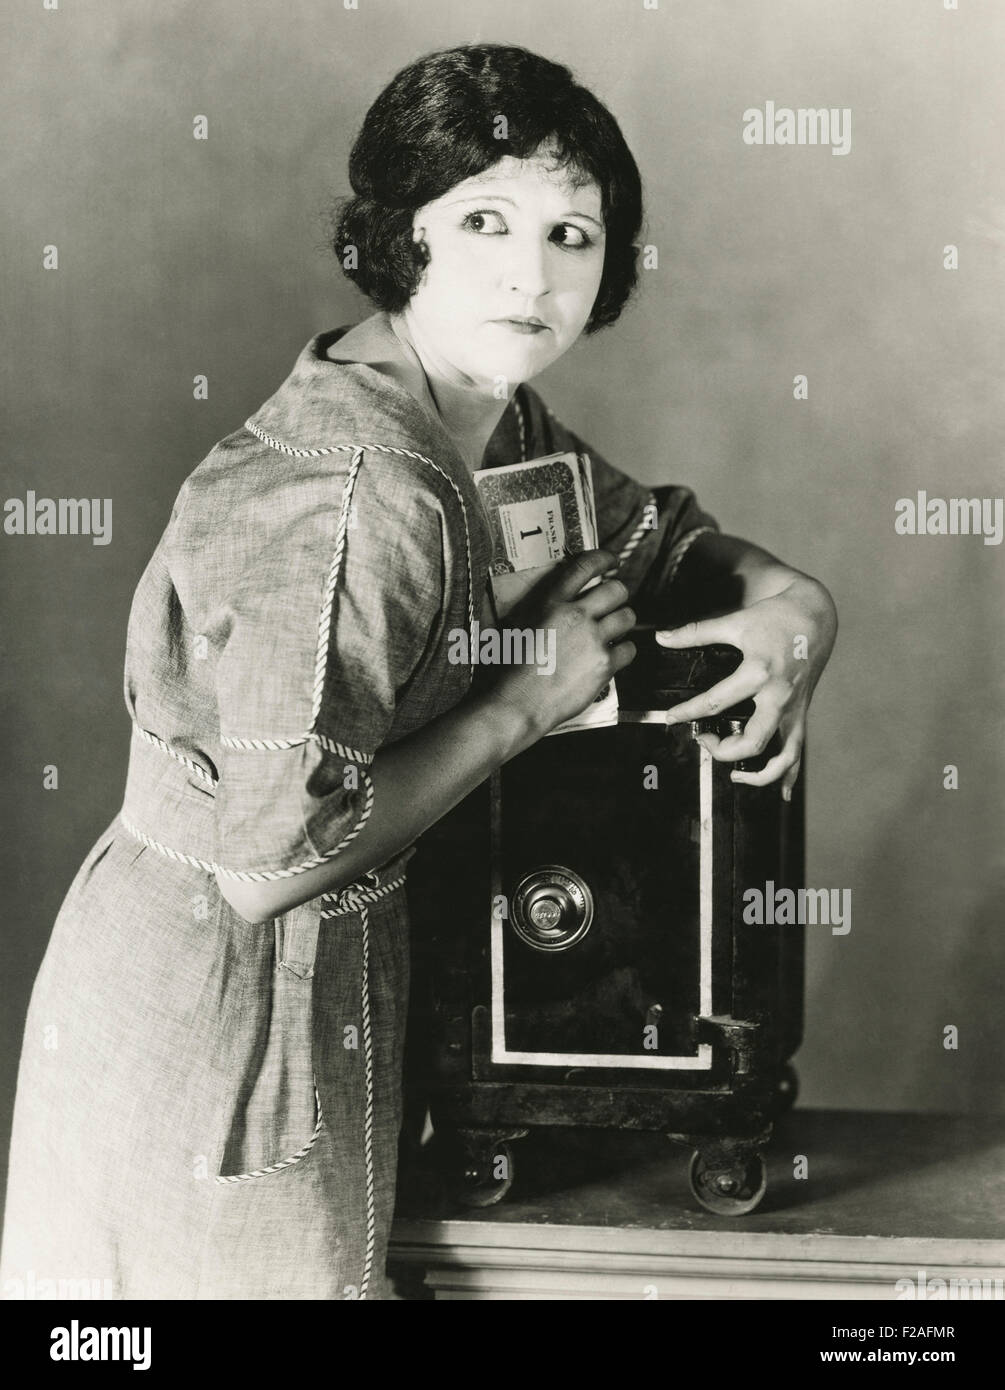 Woman stealing money from safe (OLVI008_OU380_F) - Stock Image